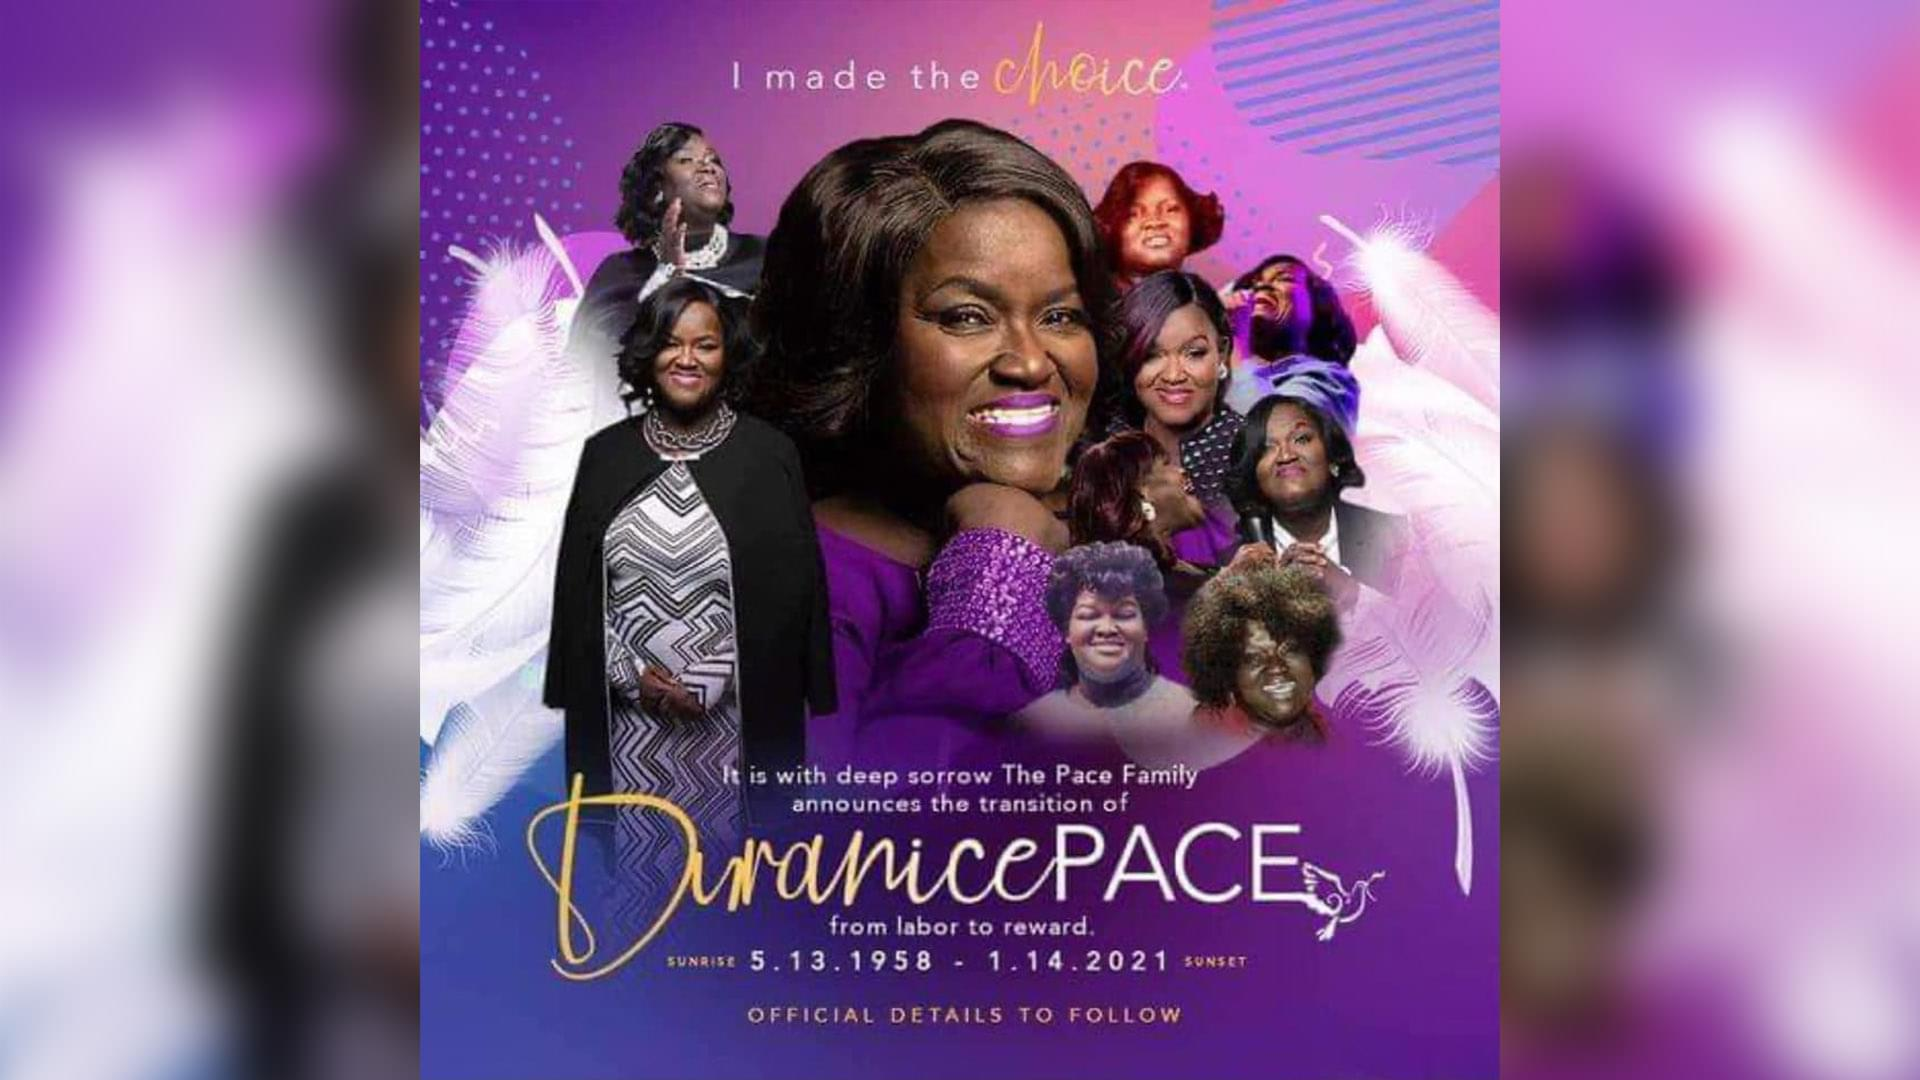 Remembering Duranice Pace